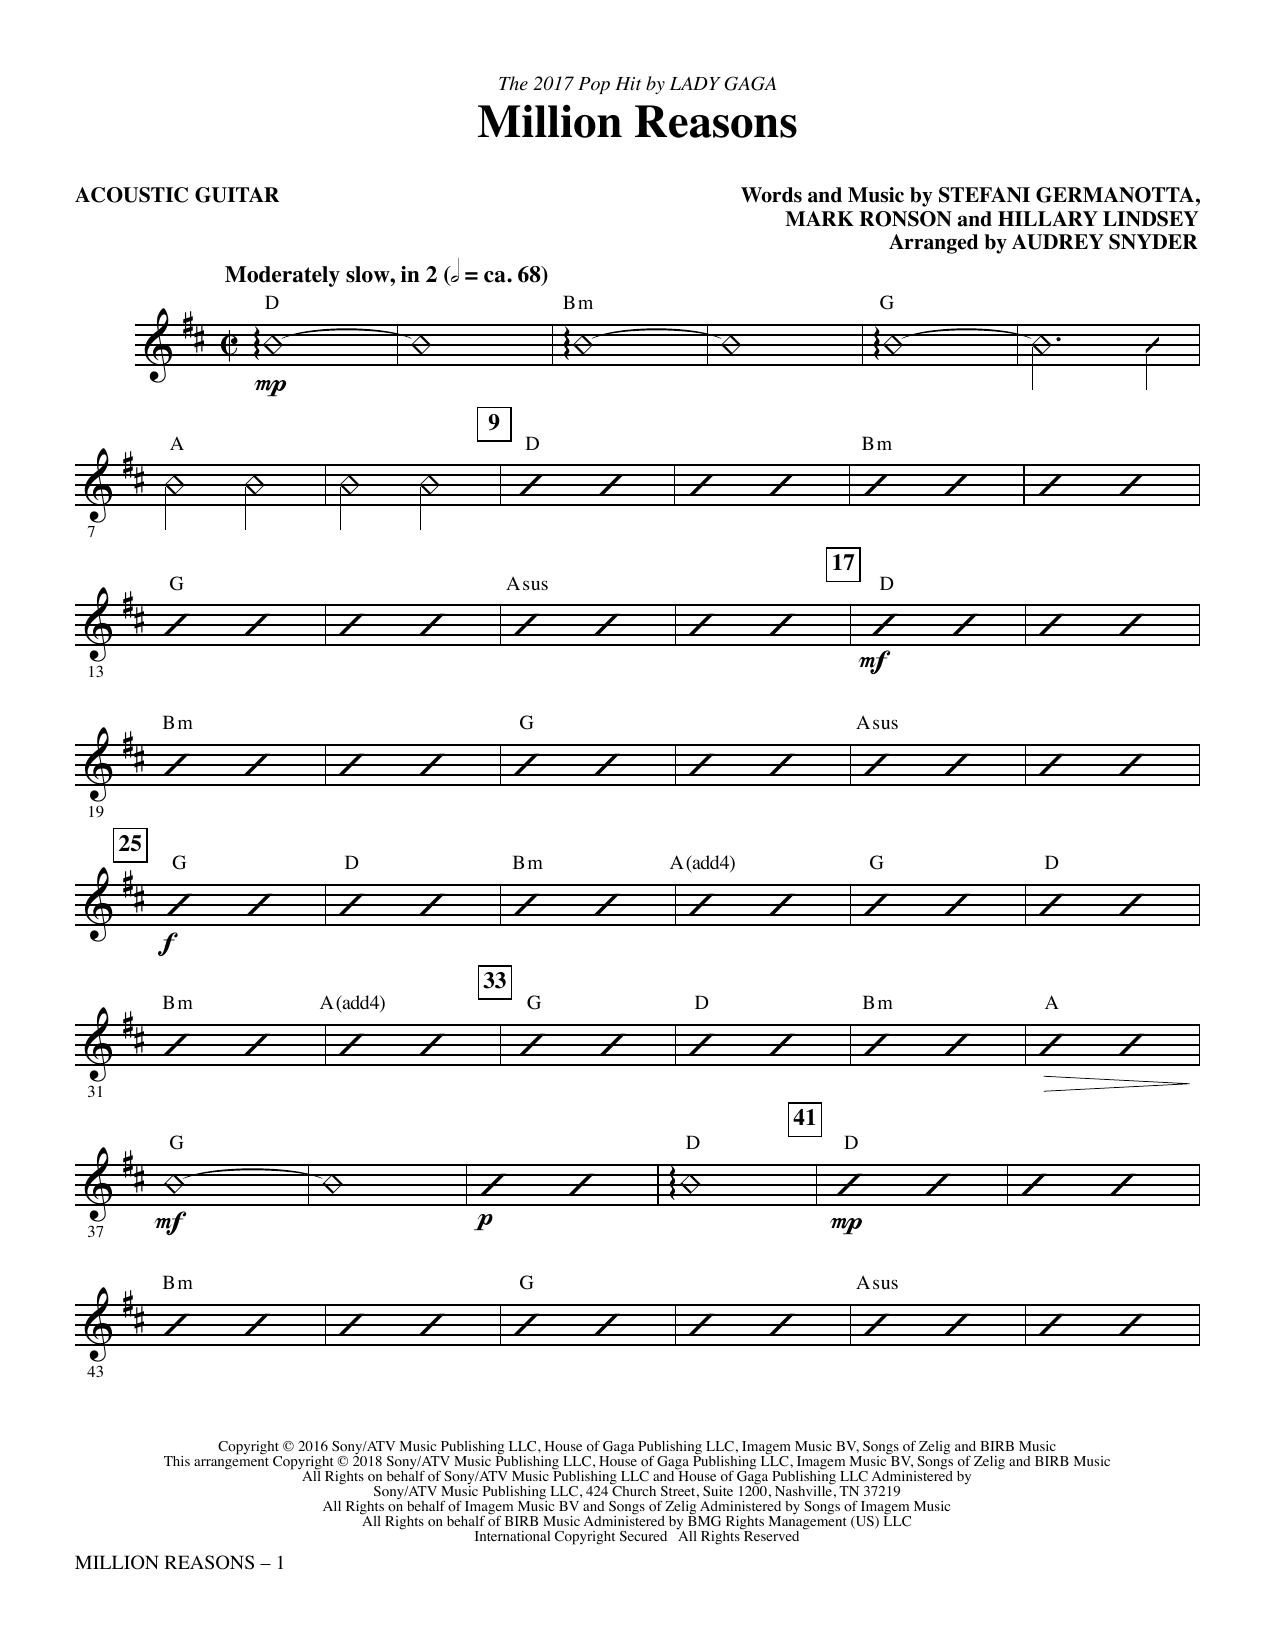 Lady Gaga Million Reasons (arr. Audrey Snyder) - Acoustic Guitar sheet music notes and chords. Download Printable PDF.